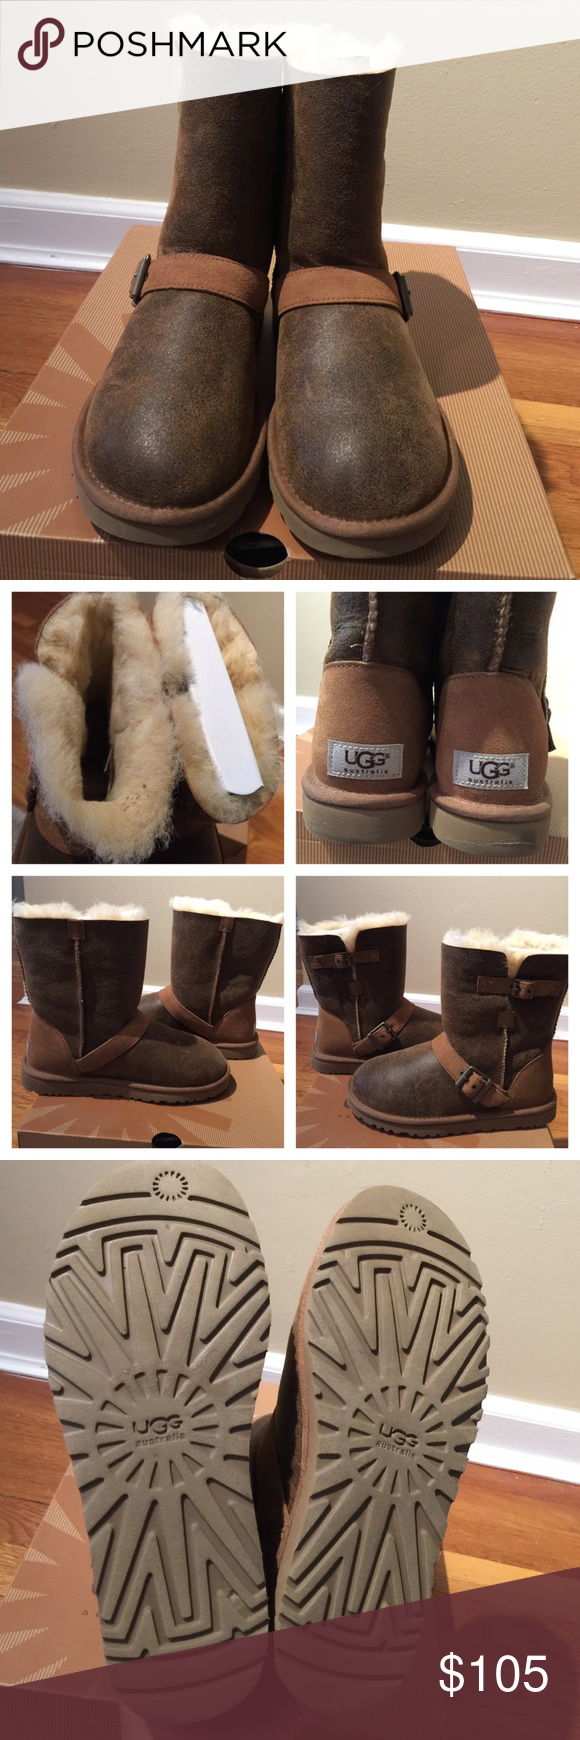 09d06ebfa2b UGG BOOTS Authentic UGG BOOTS. Women's classic short Dylyn Genuine ...